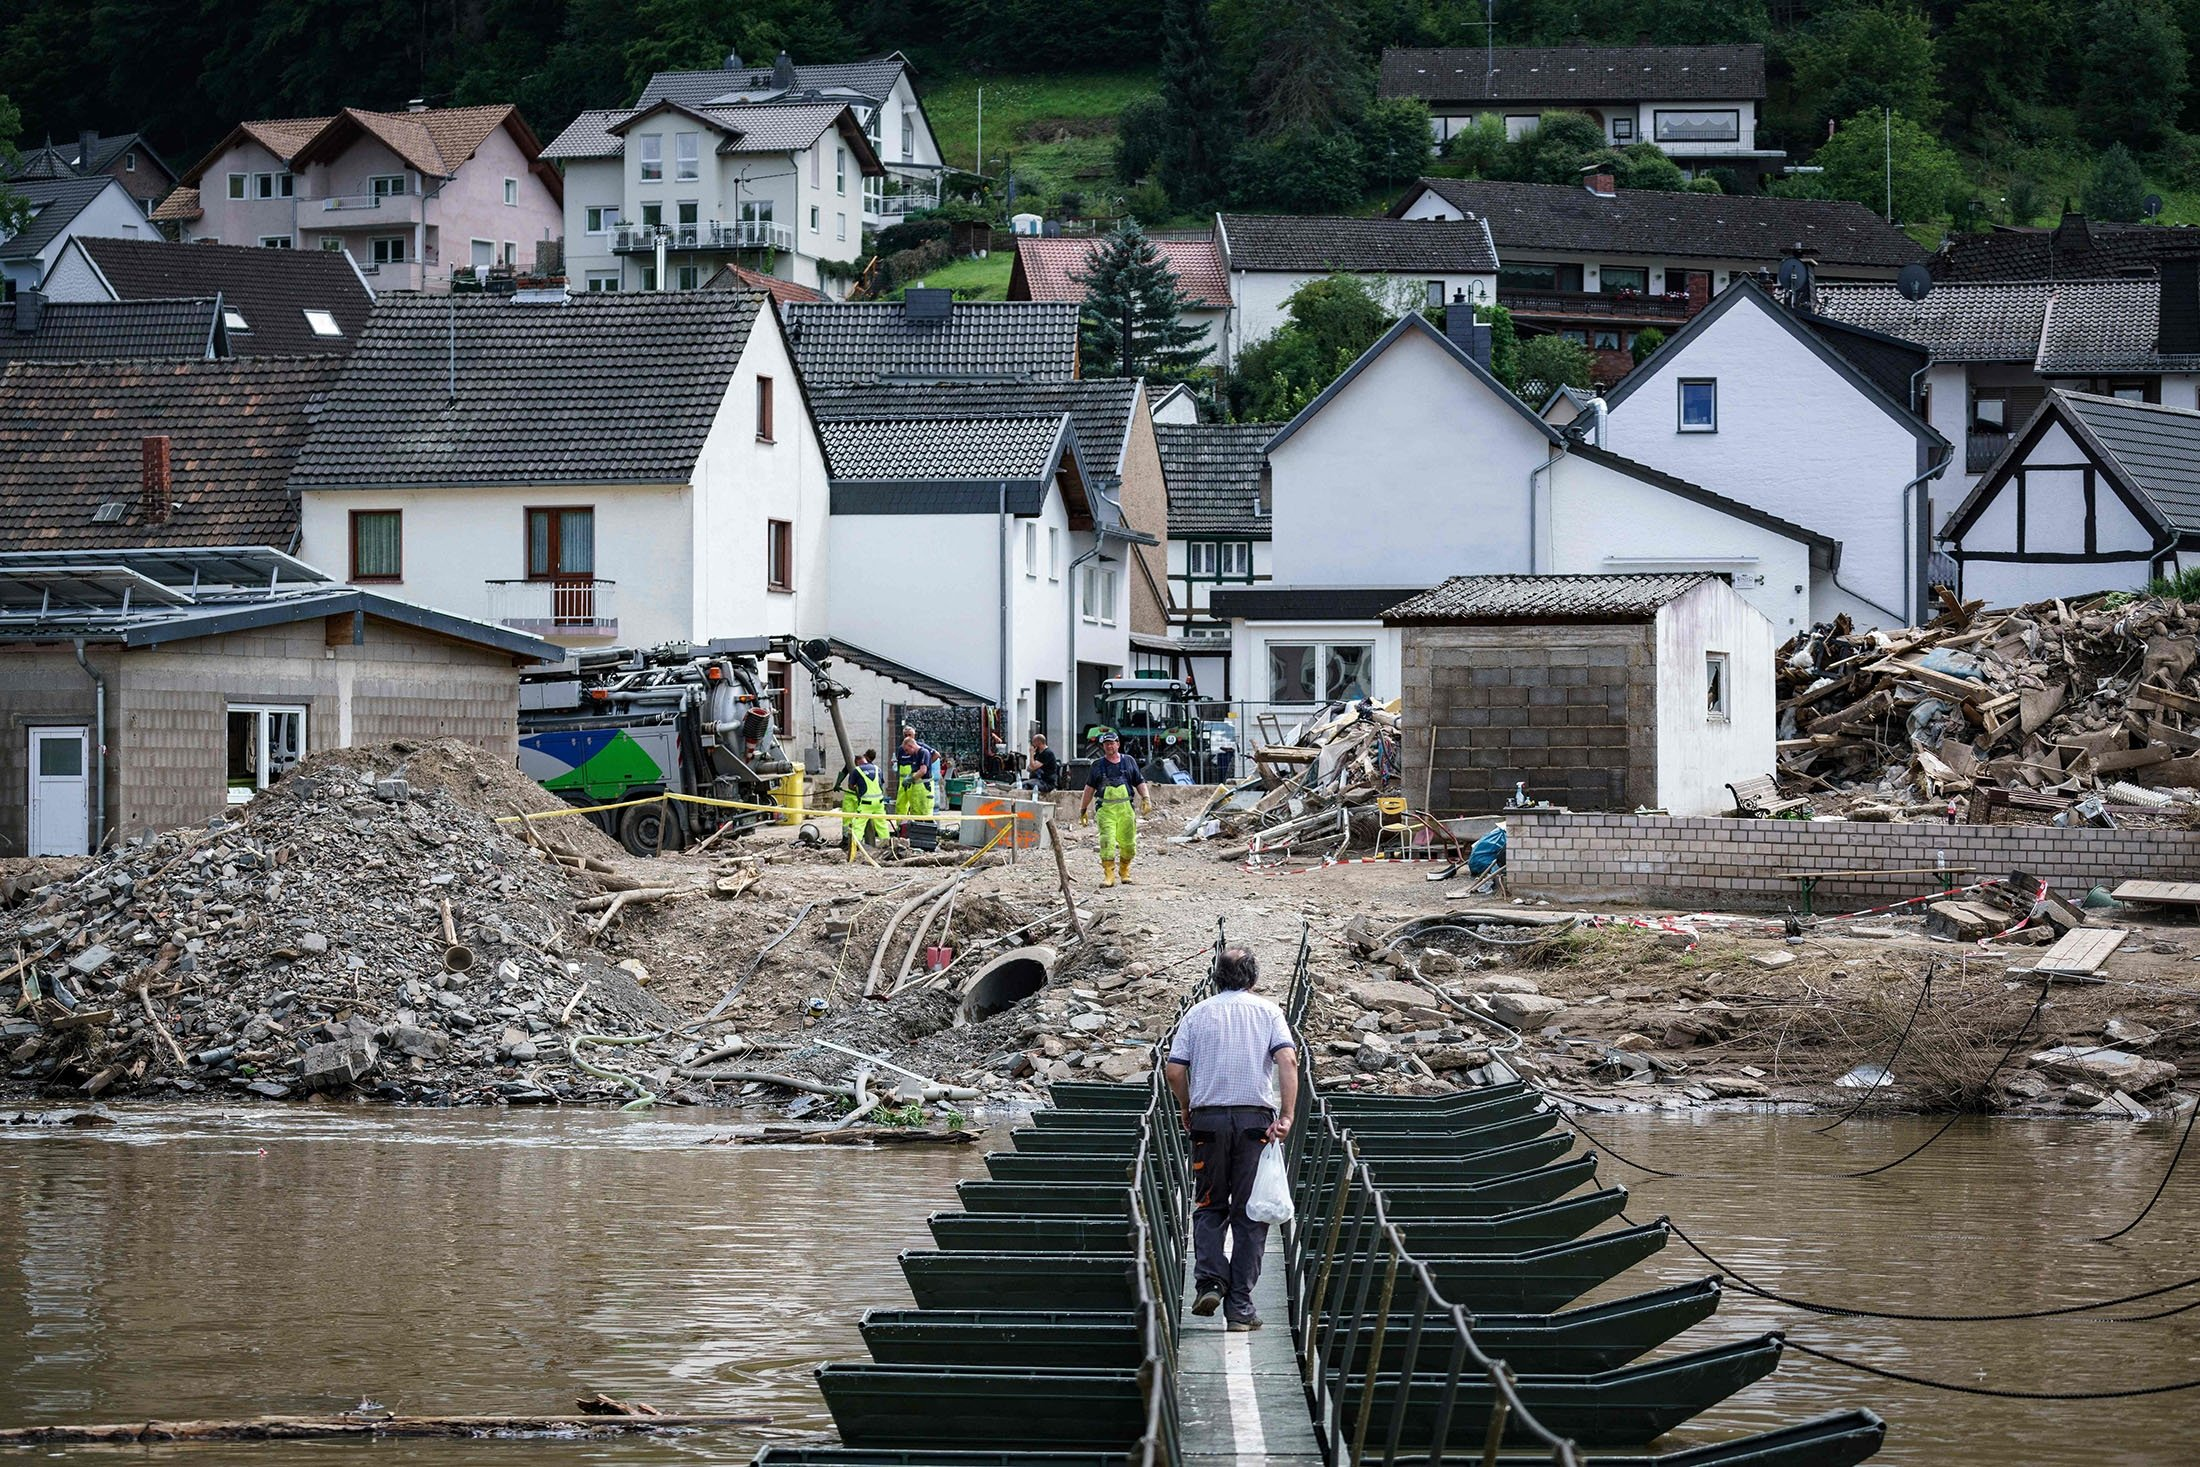 A man walks across a temporary bridge in the wine village of Rech near Dernau on the river Ahr, weeks after heavy rain and floods caused major damage in the Ahr region, western Germany, July 30, 2021. (AFP Photo)